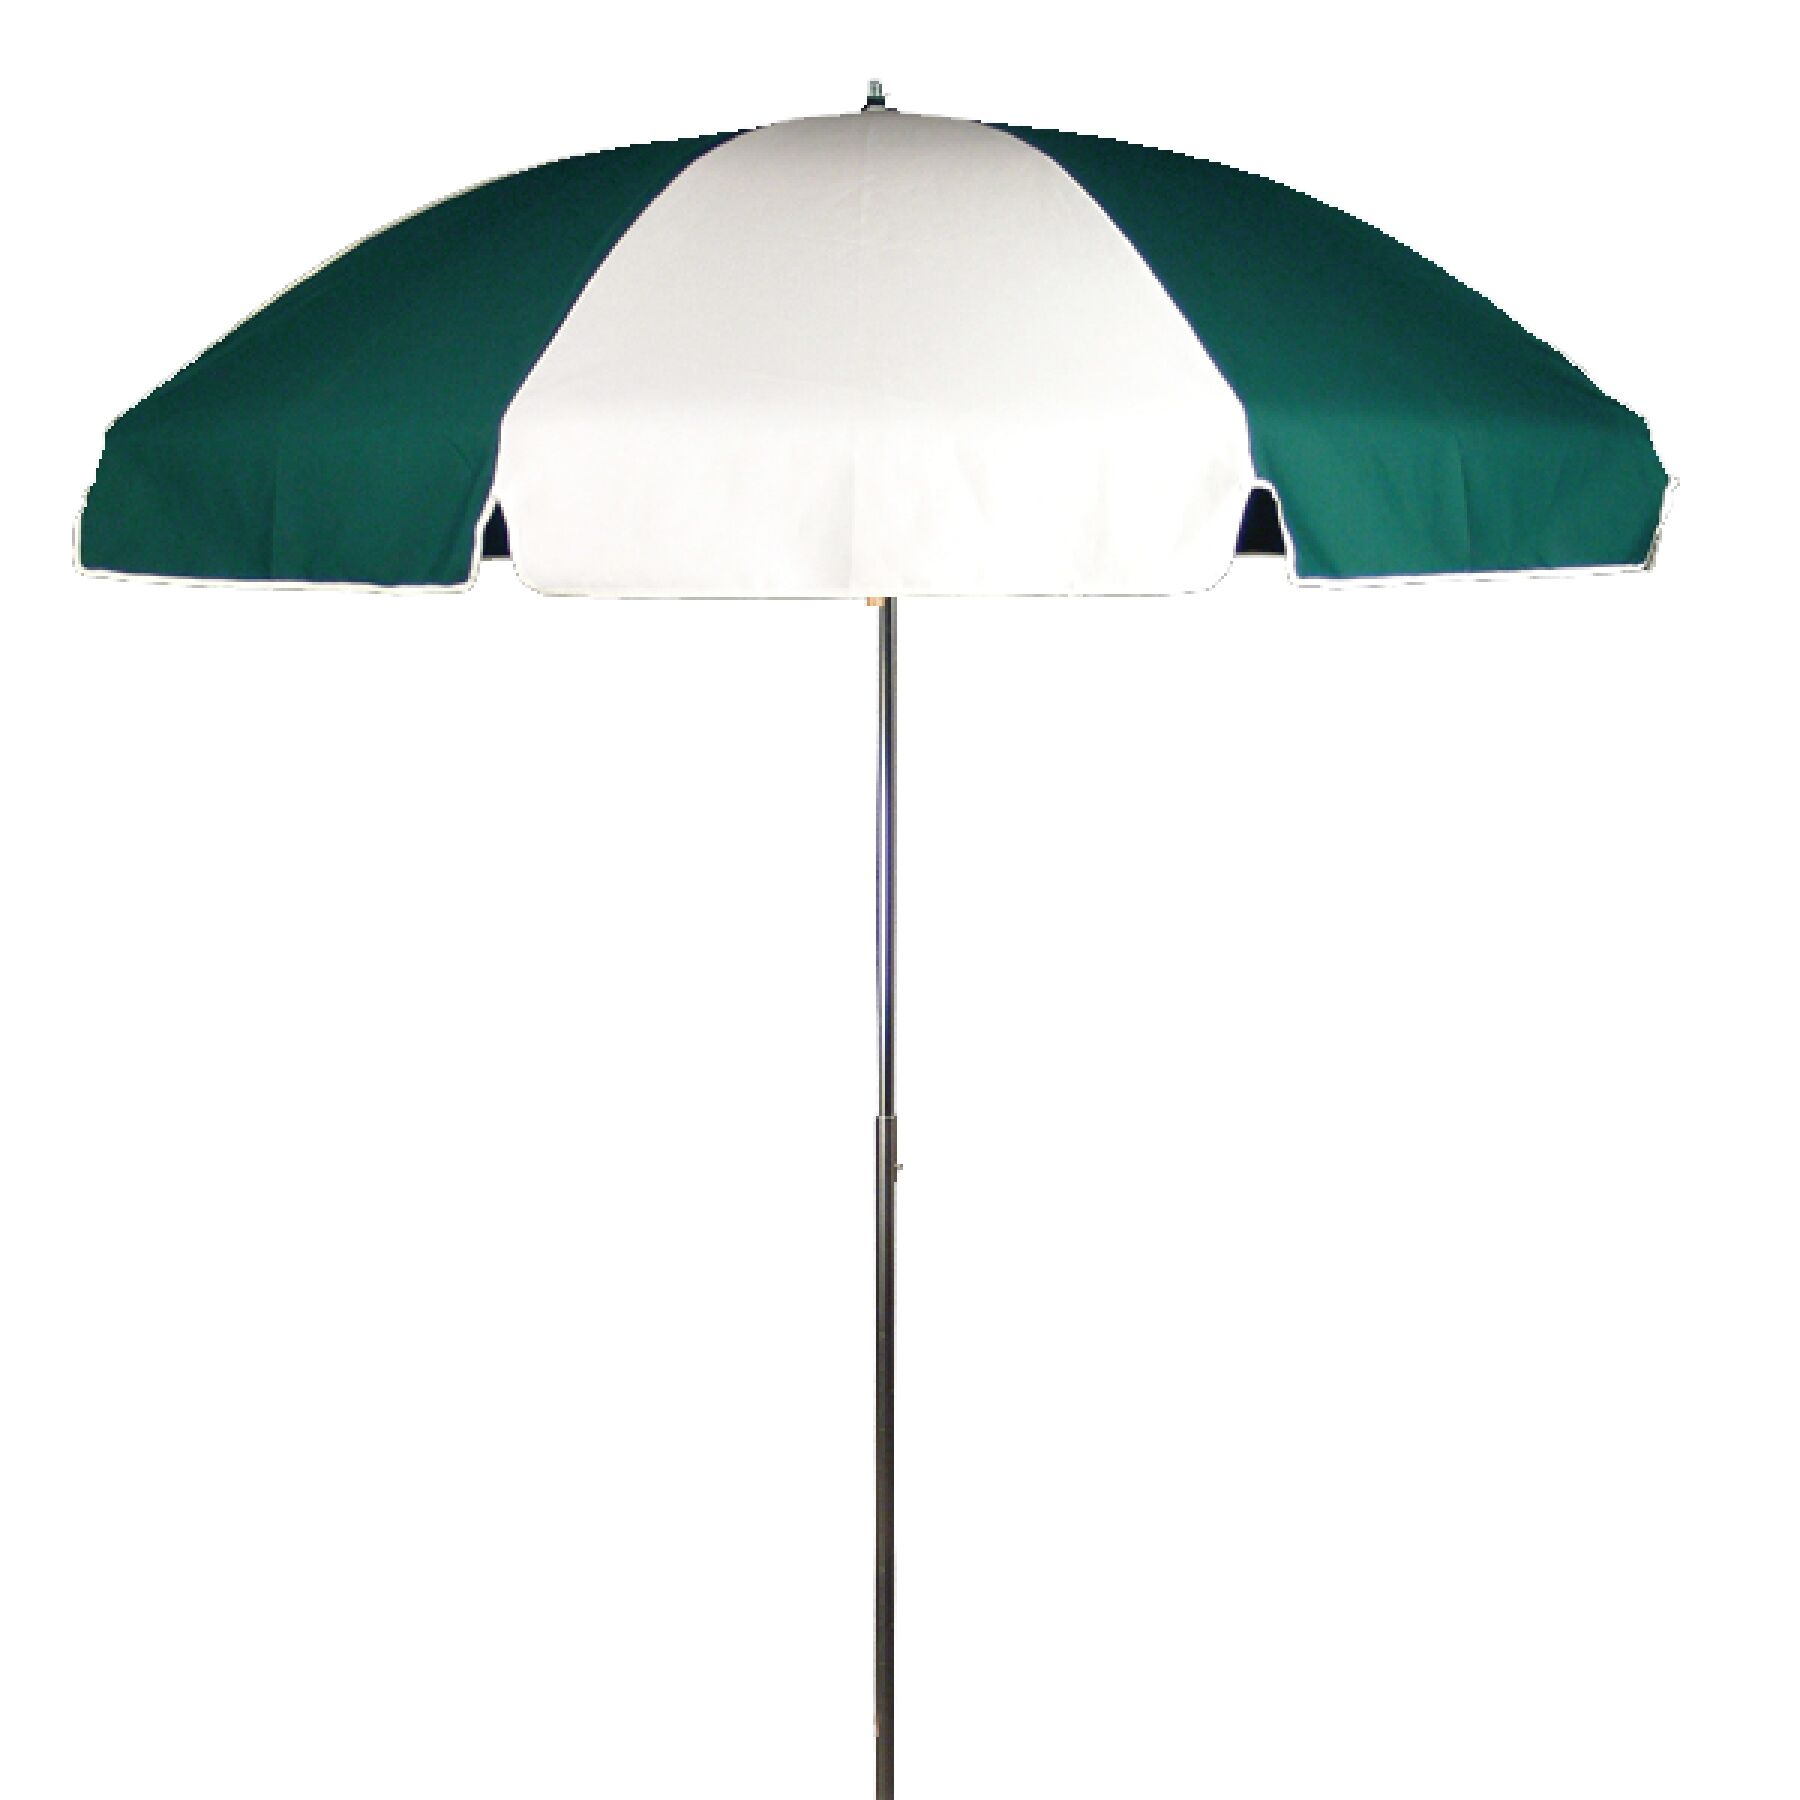 7.5' Beach Umbrella Tilt: Without Tilt, Fabric: Turquoise and White Heavy Gauge Vinyl